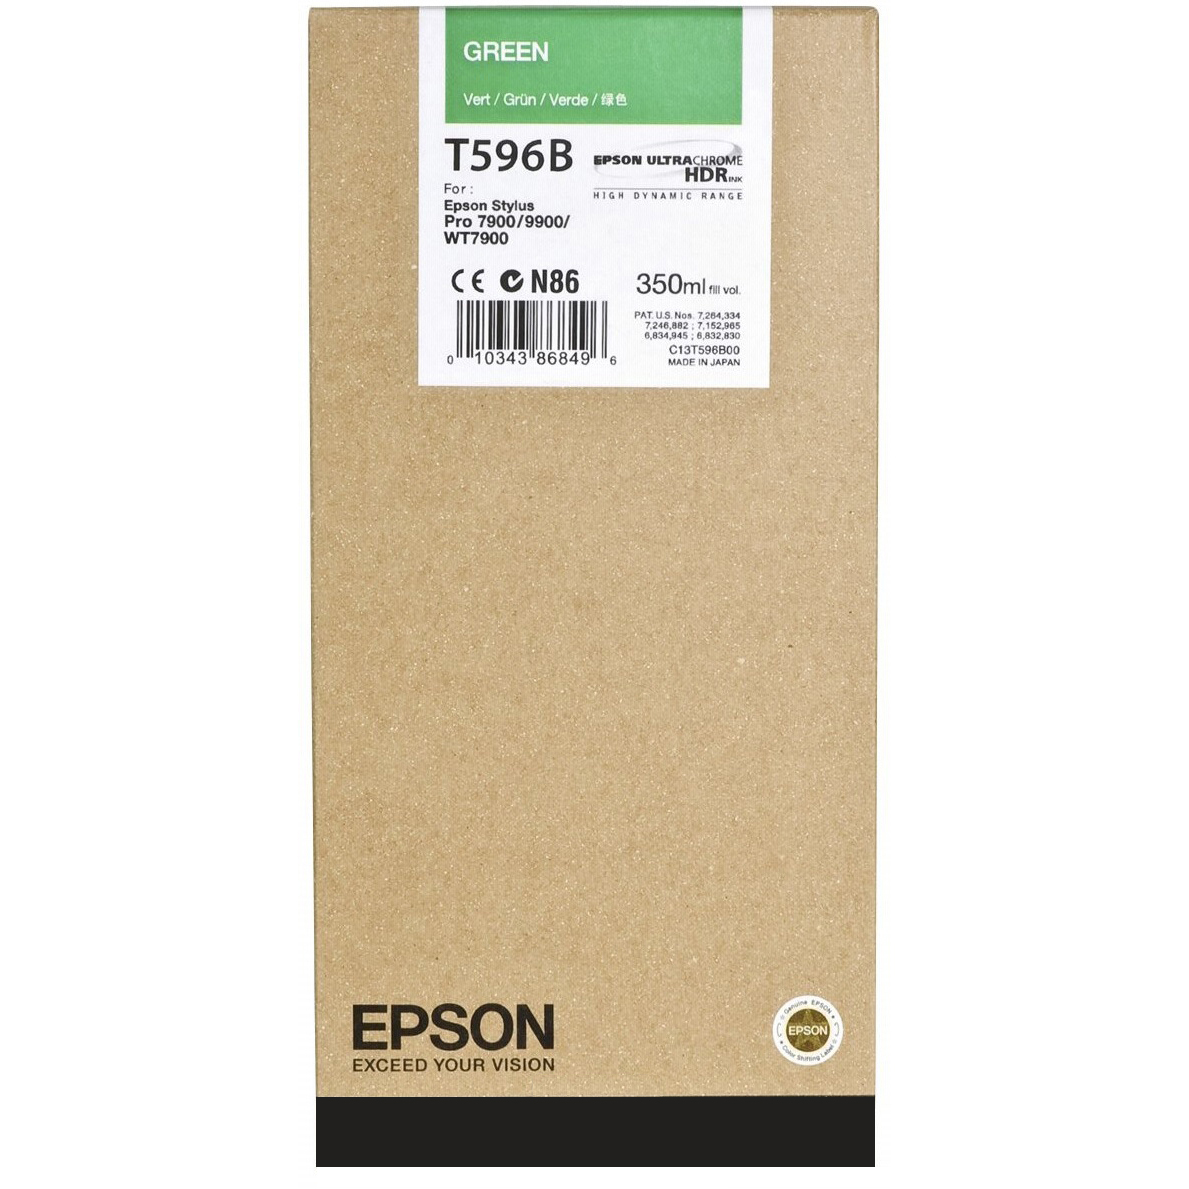 Original Epson T596B Green Ink Cartridge (C13T596B00)